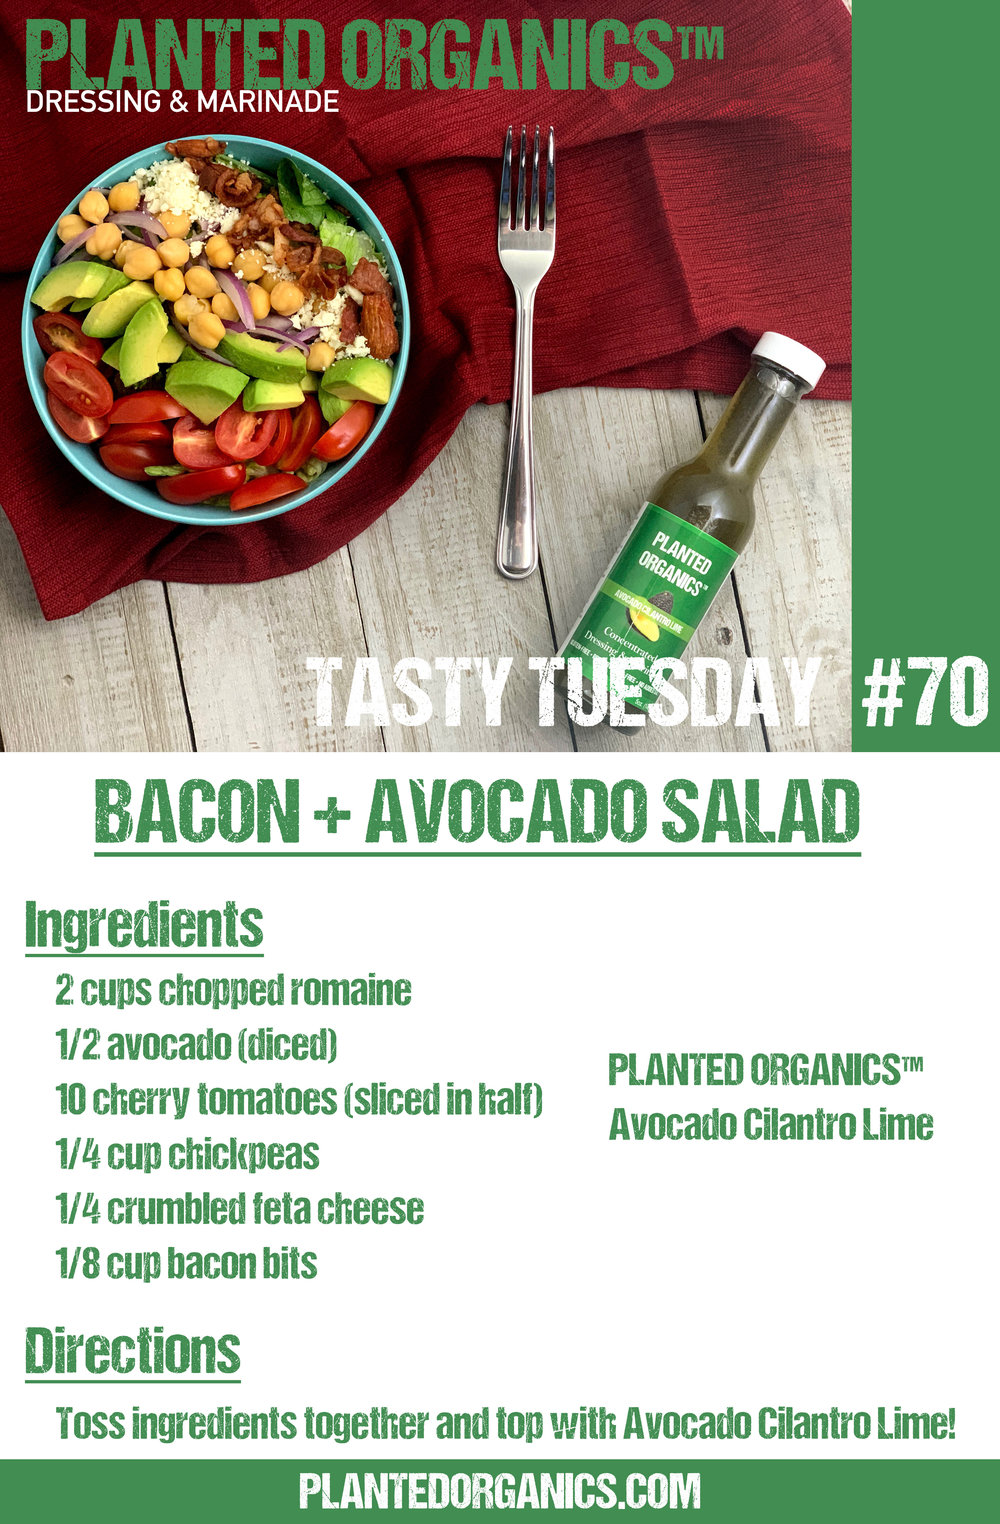 Tasty Tuesday #70! - This week is a Bacon + Avocado salad! This one features our Avocado Cilantro Lime! The great burst of lime with this salad is the perfect combination! Enjoy!